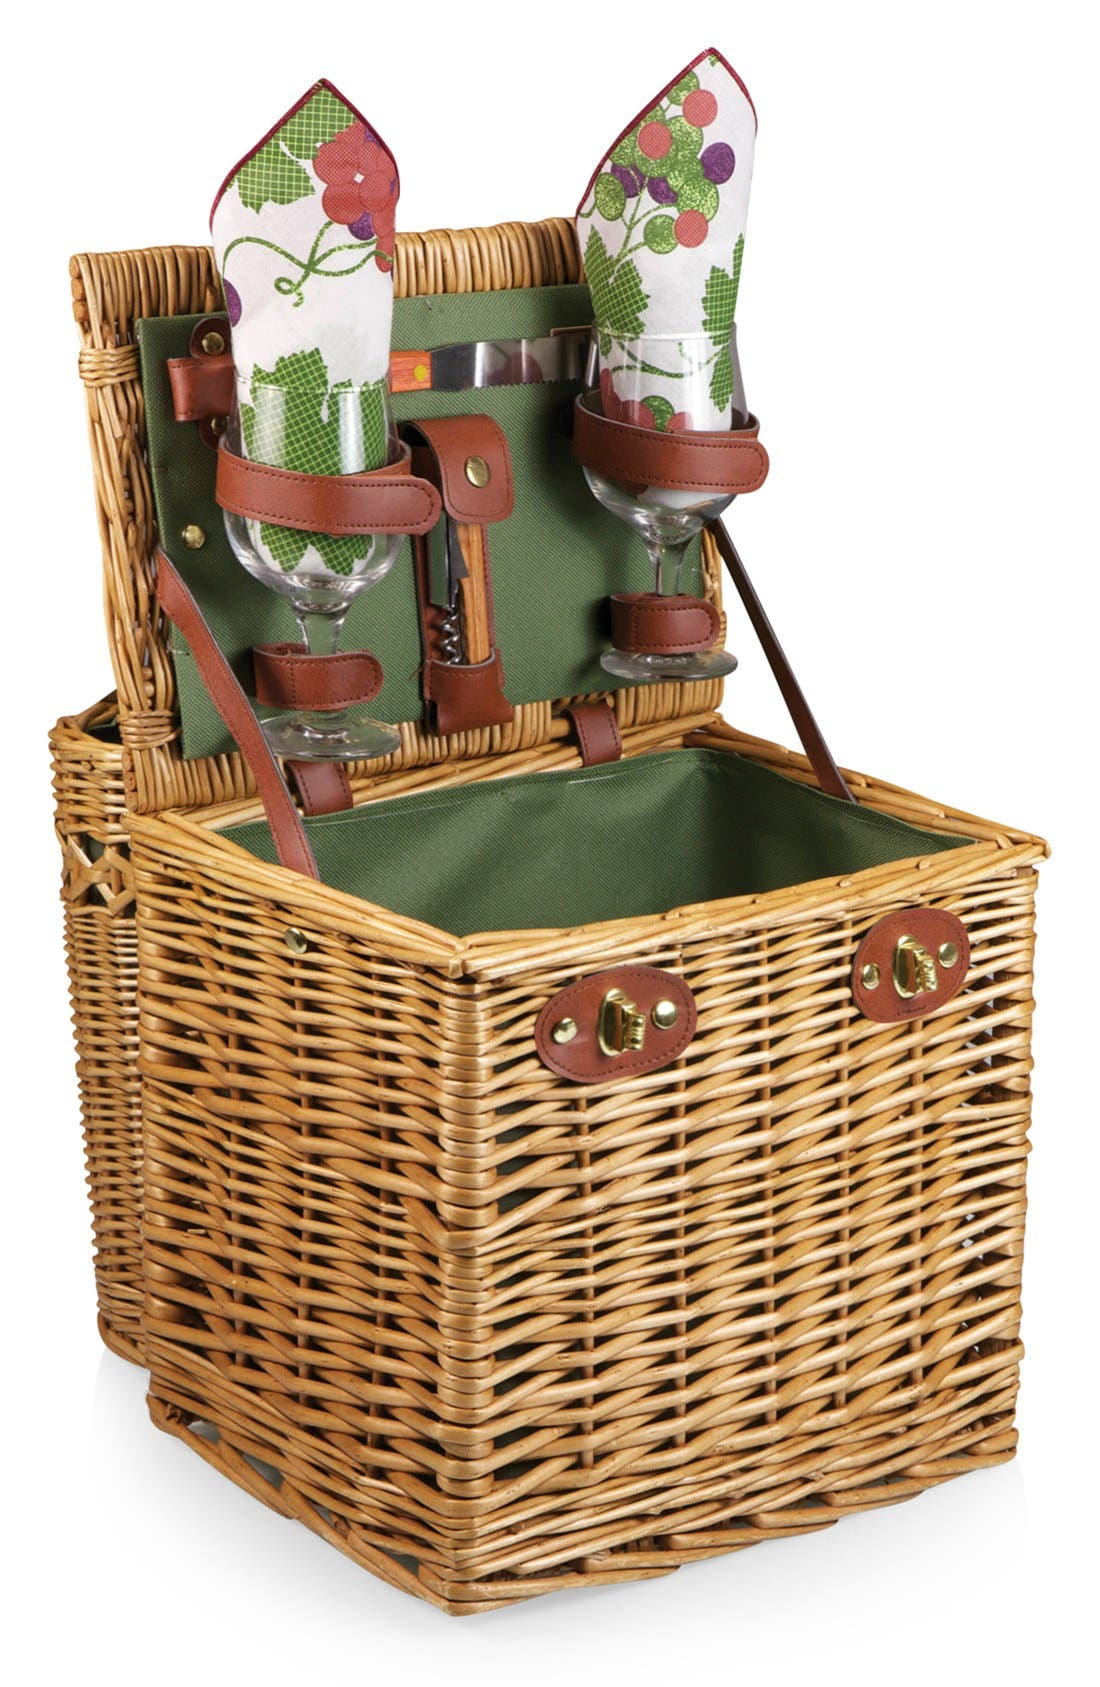 Alternate Image 1 Selected - Picnic Time 'Vino' Wine & Cheese Picnic Basket